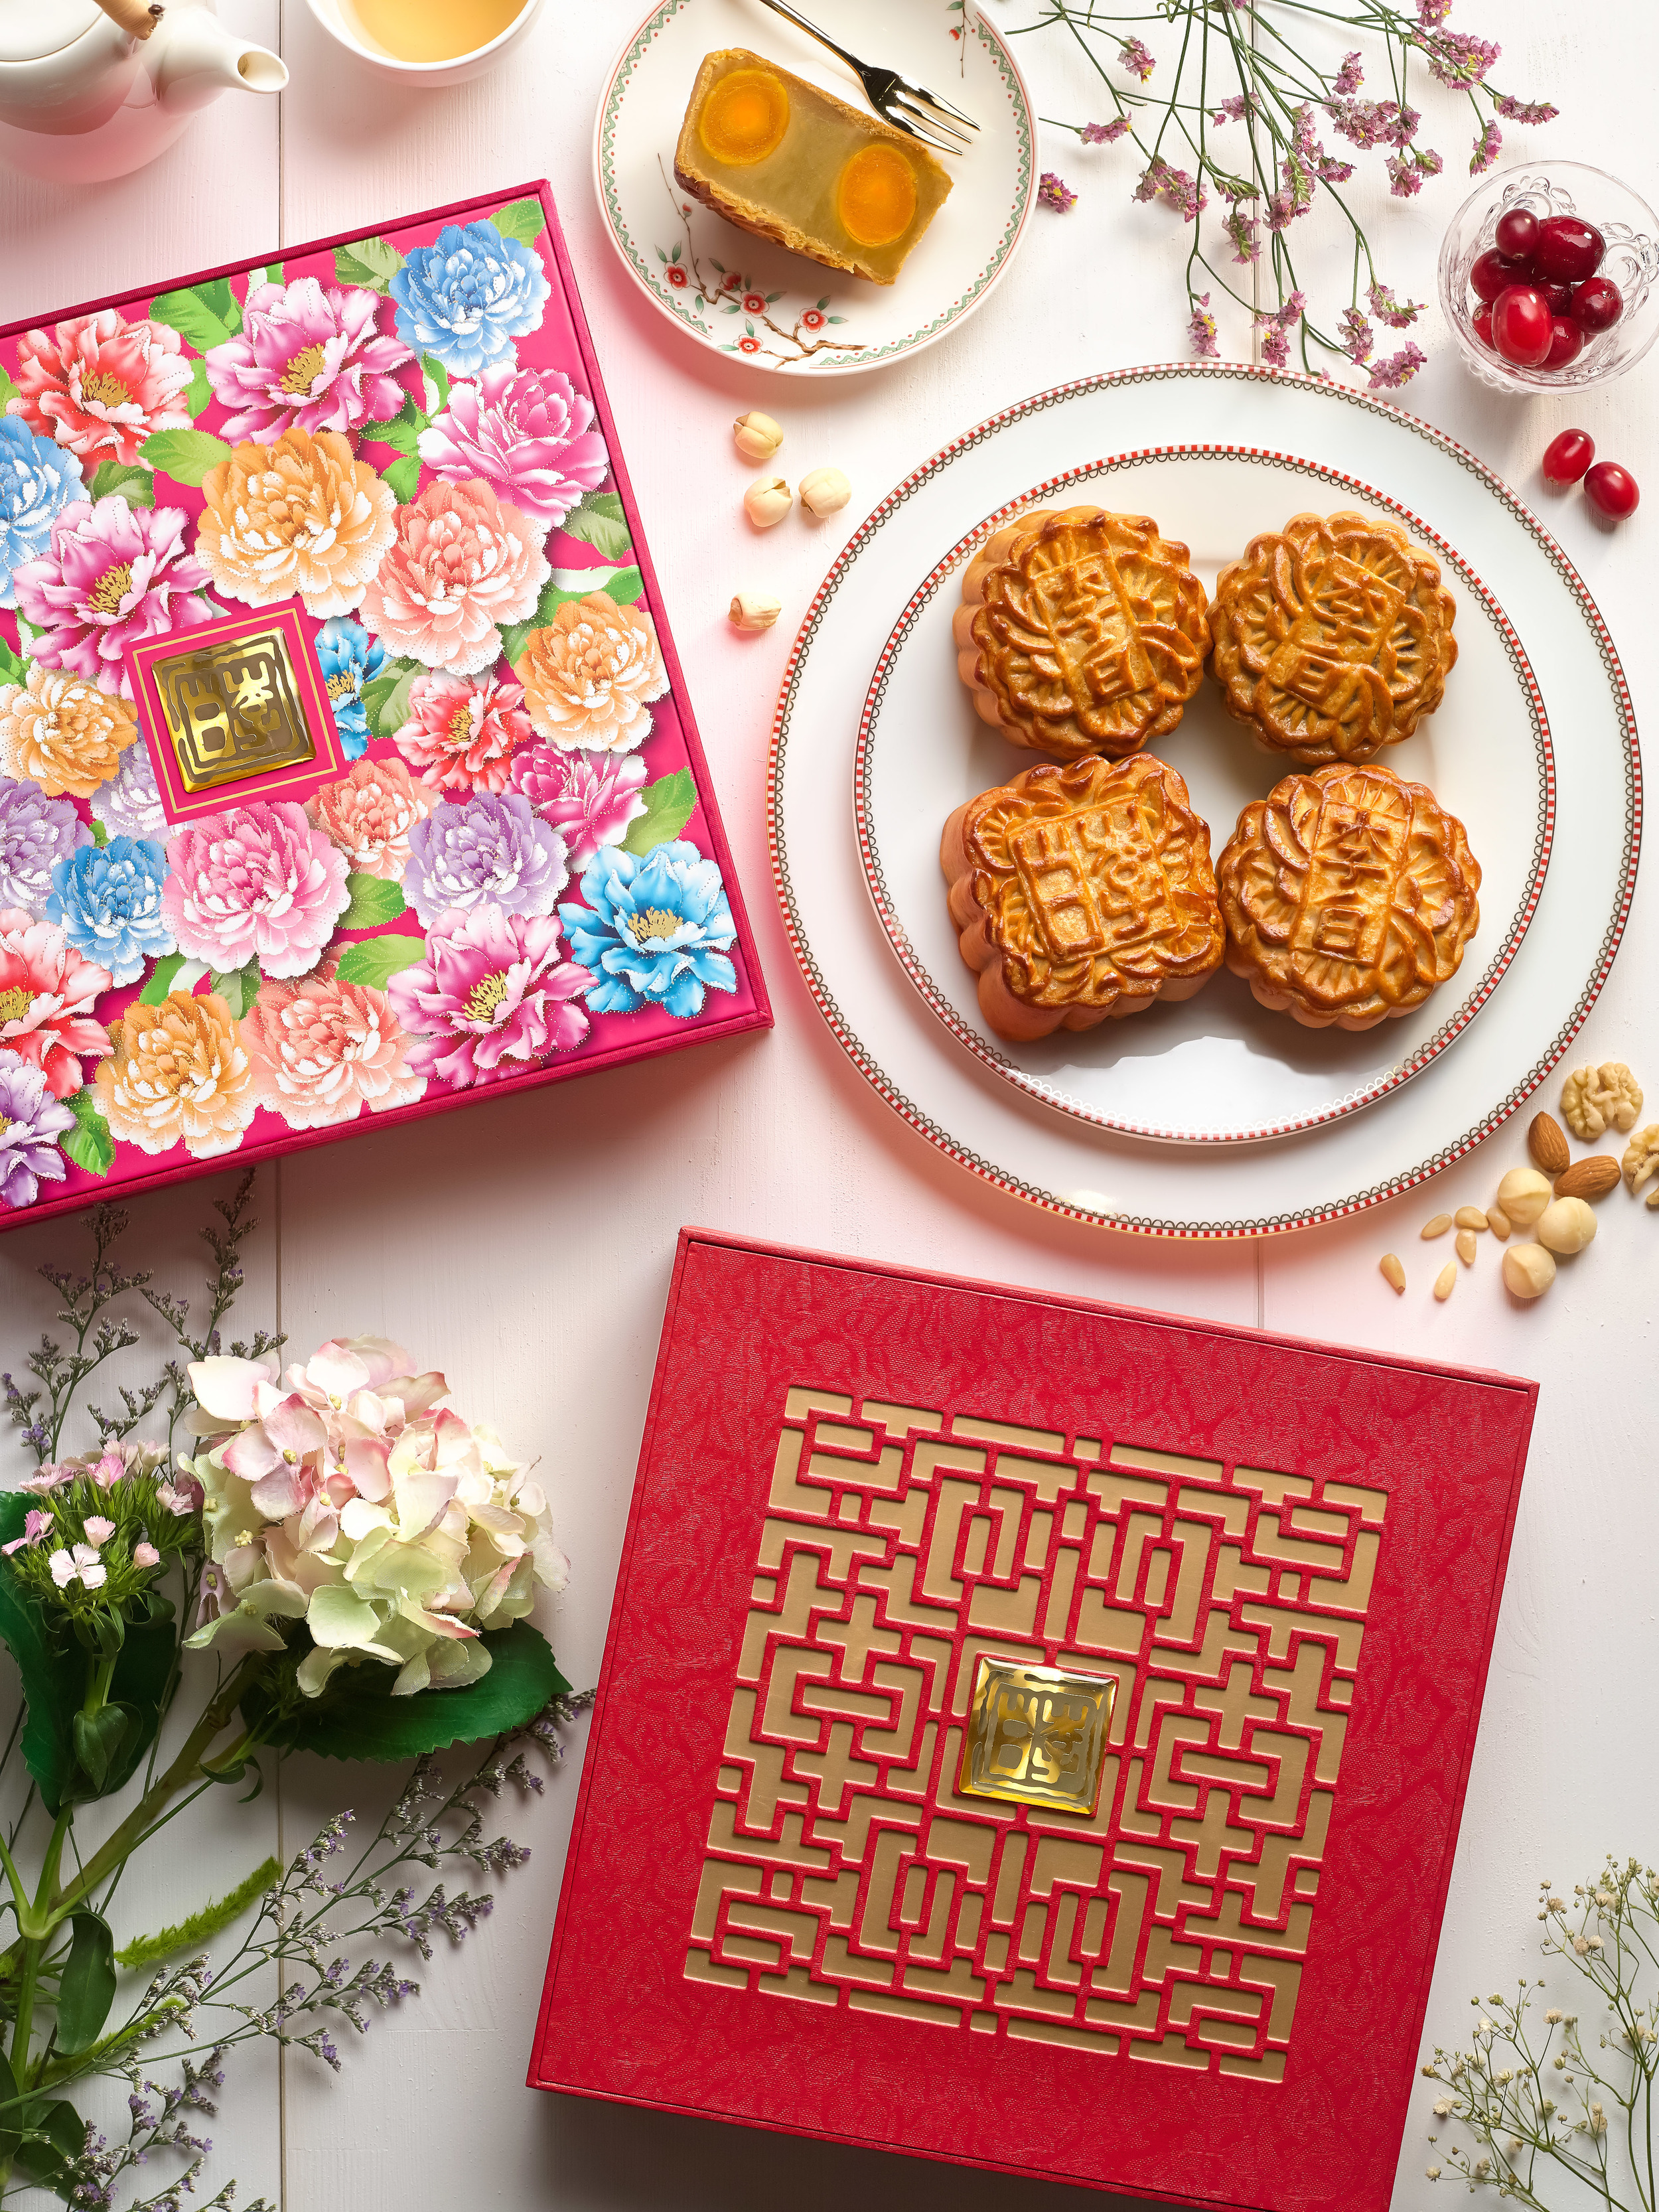 Assorted Traditional Baked Mooncakes (S$72 Nett for a Box of 4) | Photo Credit: Sheraton Towers Singapore